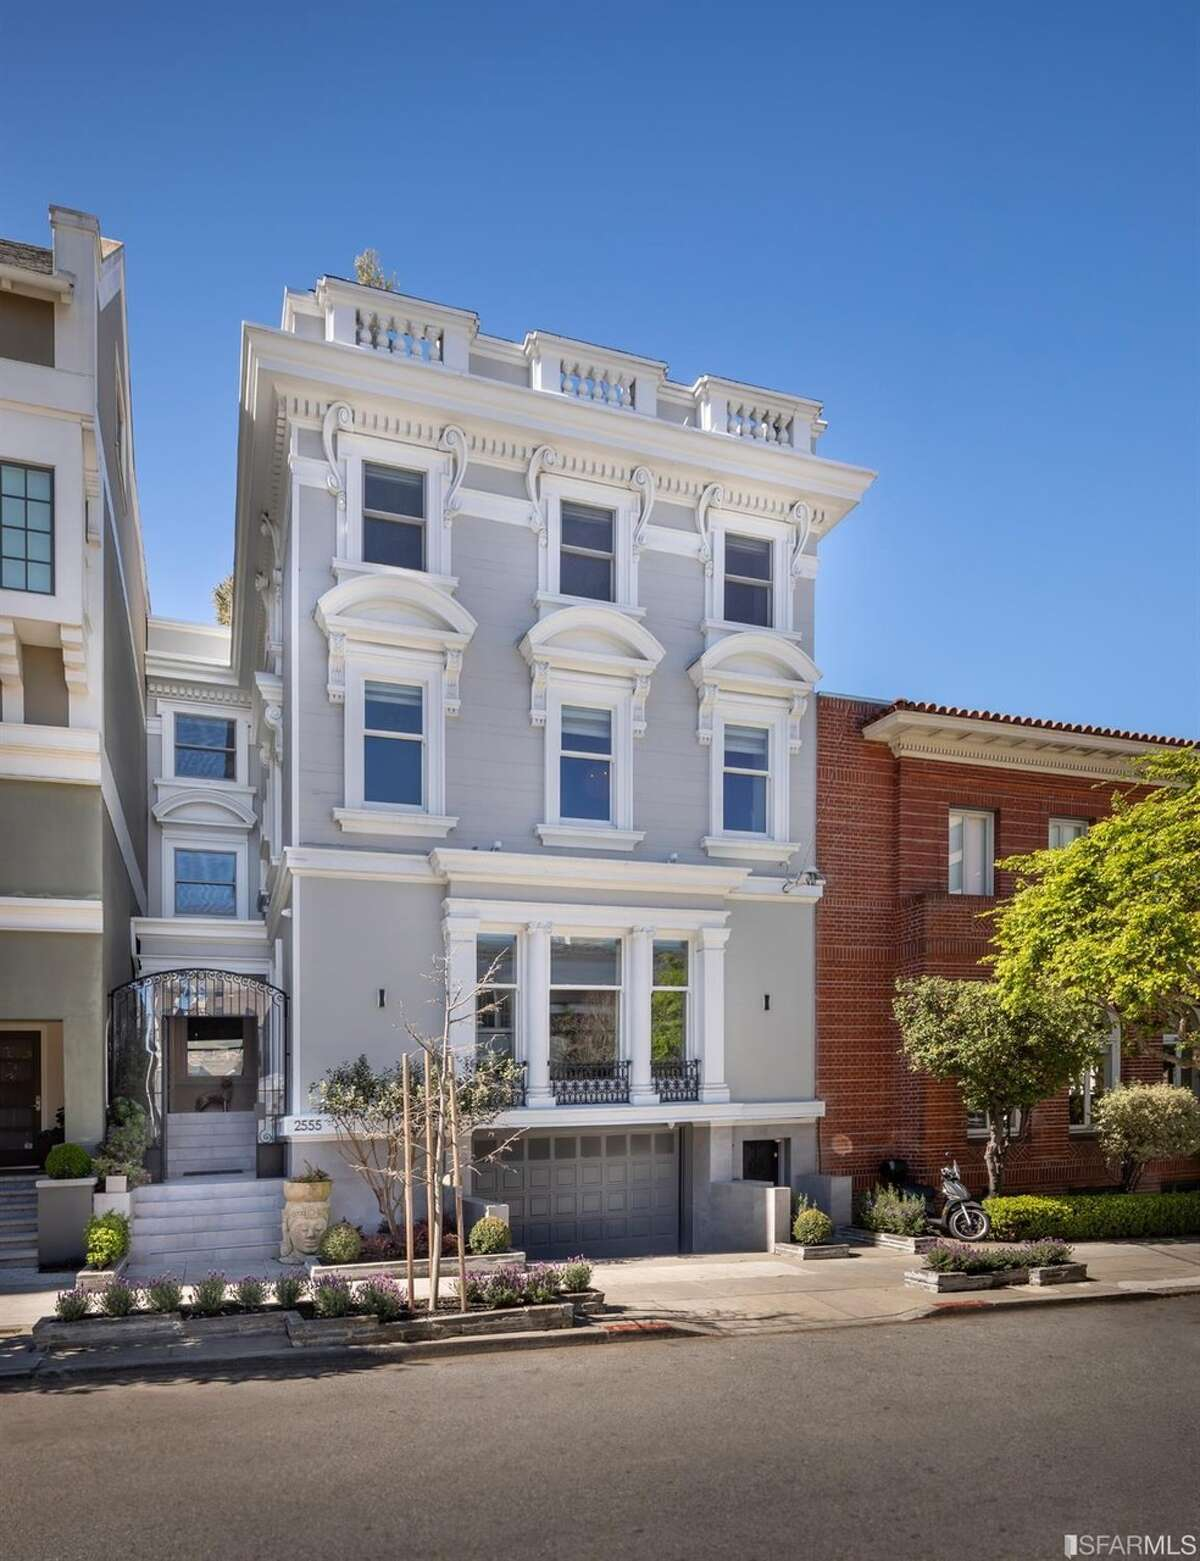 This just-renovated Pac Heights mansion with an indoor swimming pool sold for $11 million. It has a Julius Kraft-designed facade.